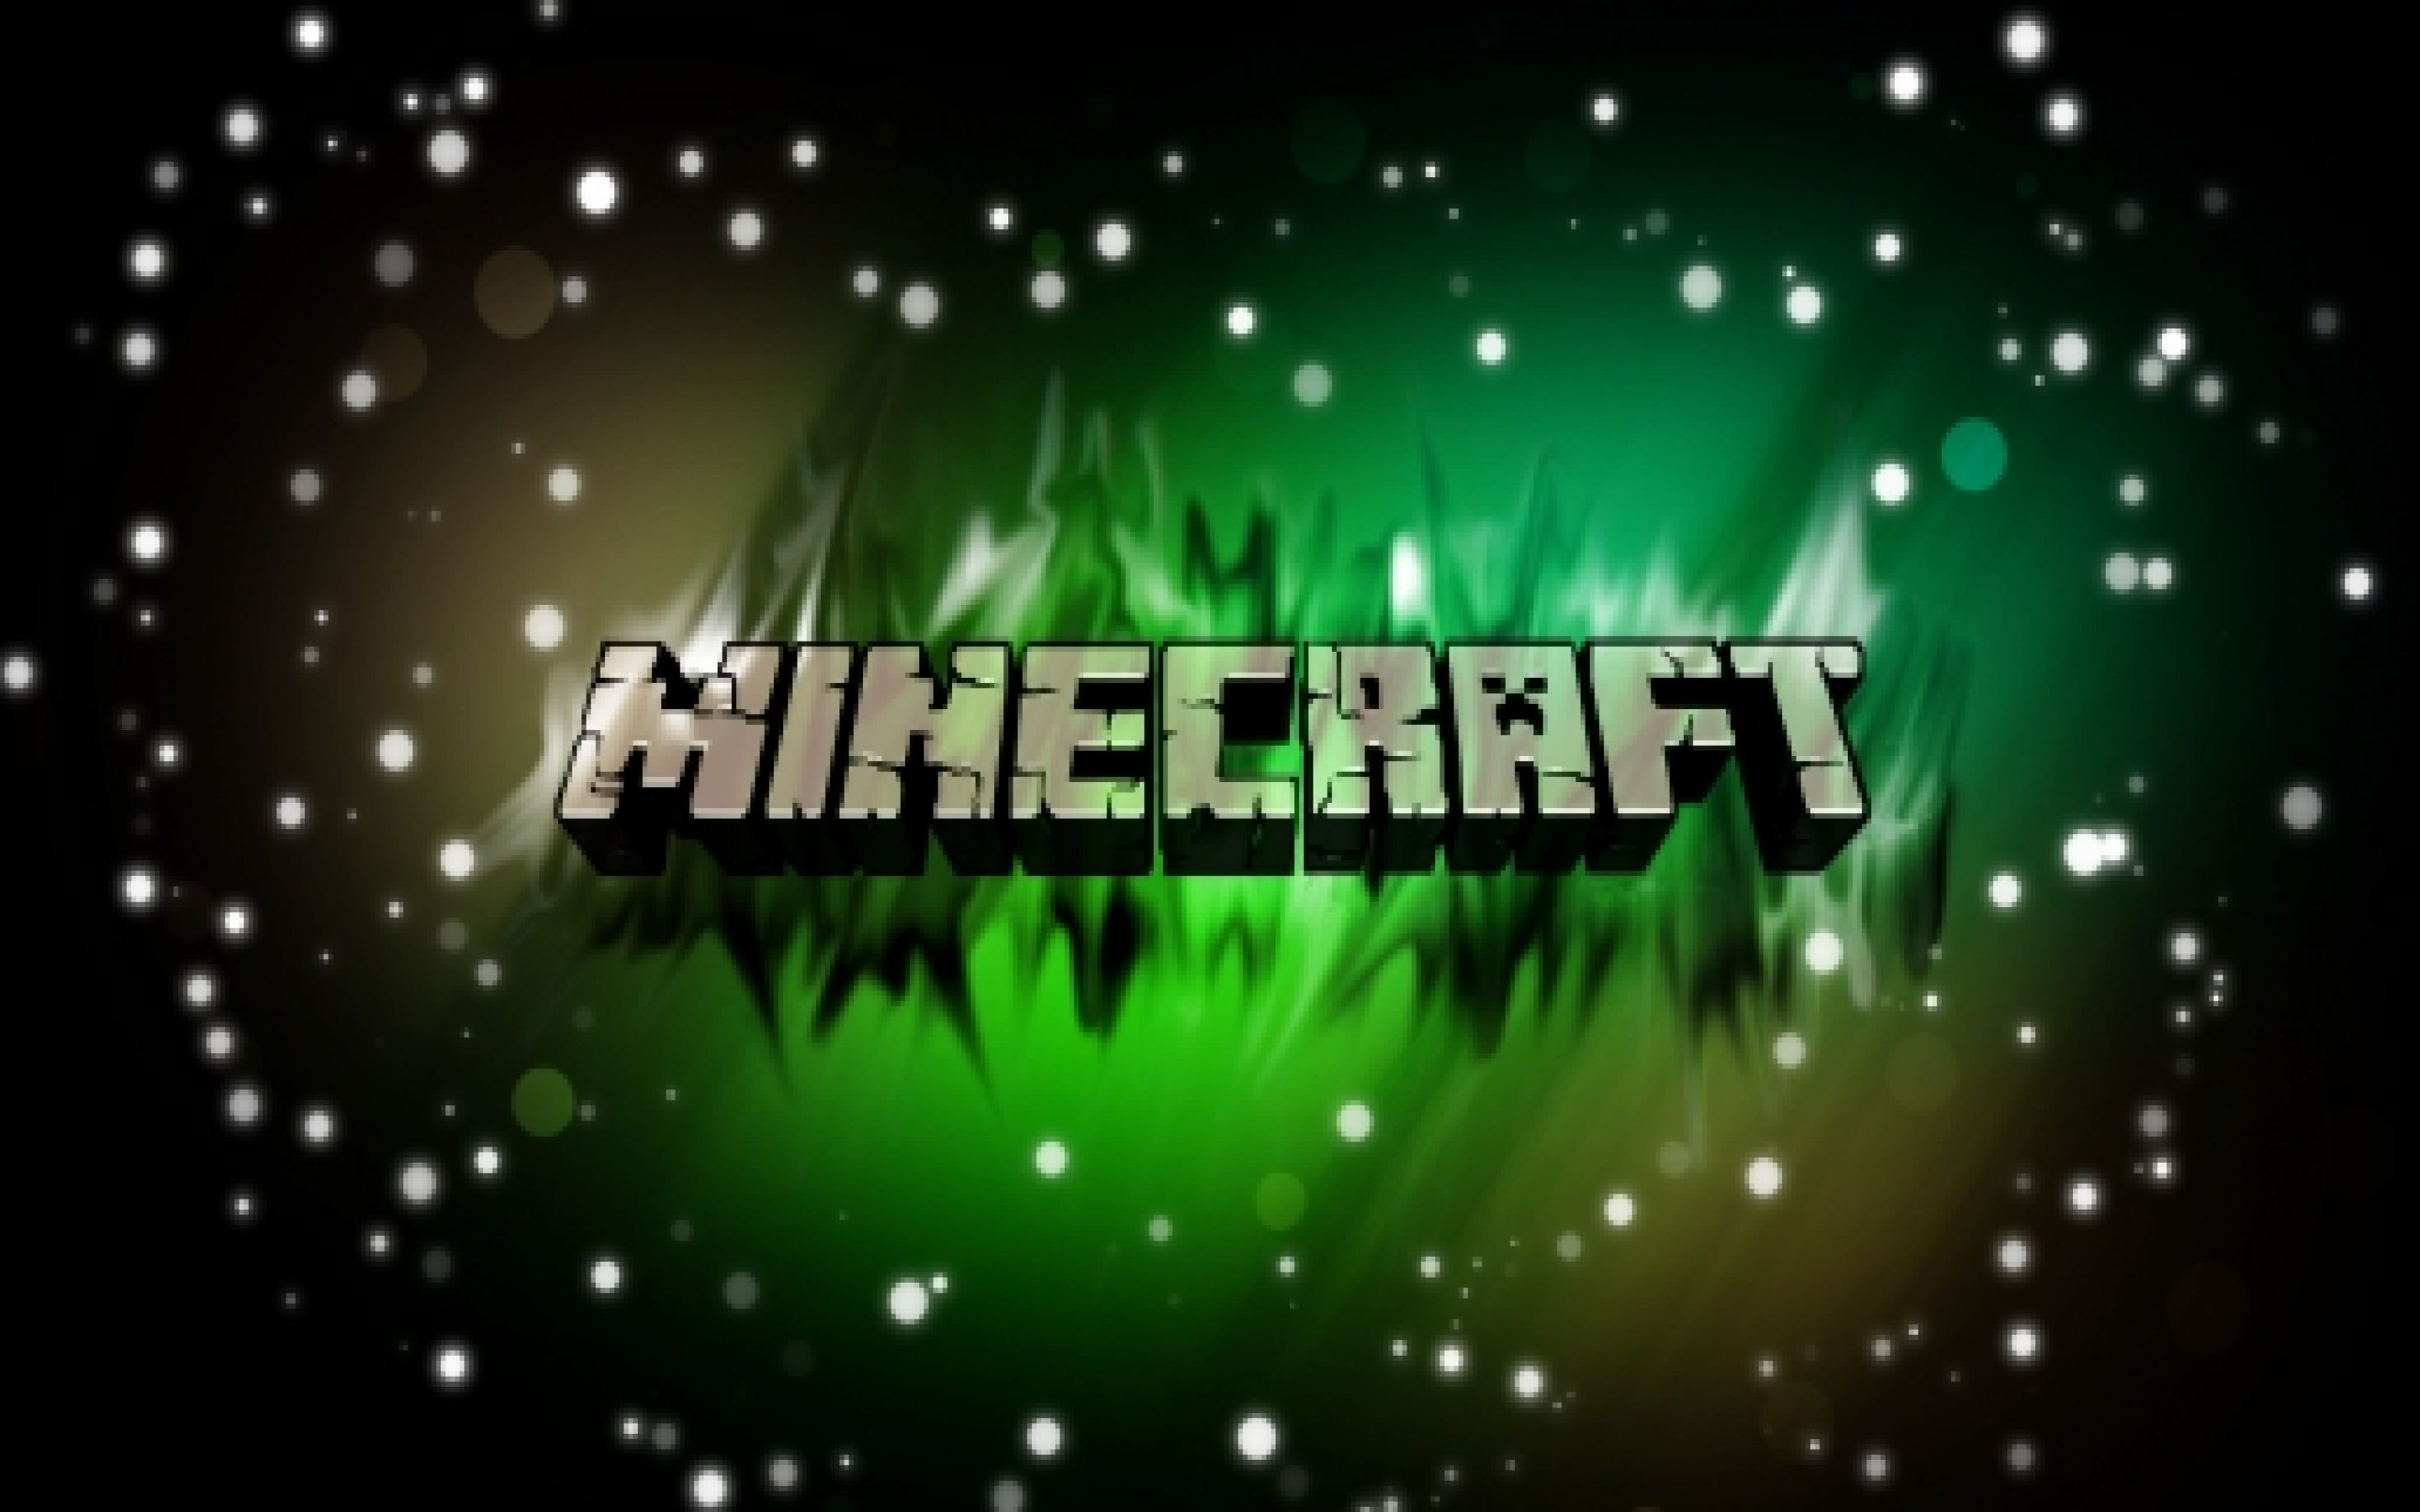 Cool Wallpaper Minecraft Desktop - c9da07ddfc714ec34033264ac4dc9e57  Pictures_924983.jpg